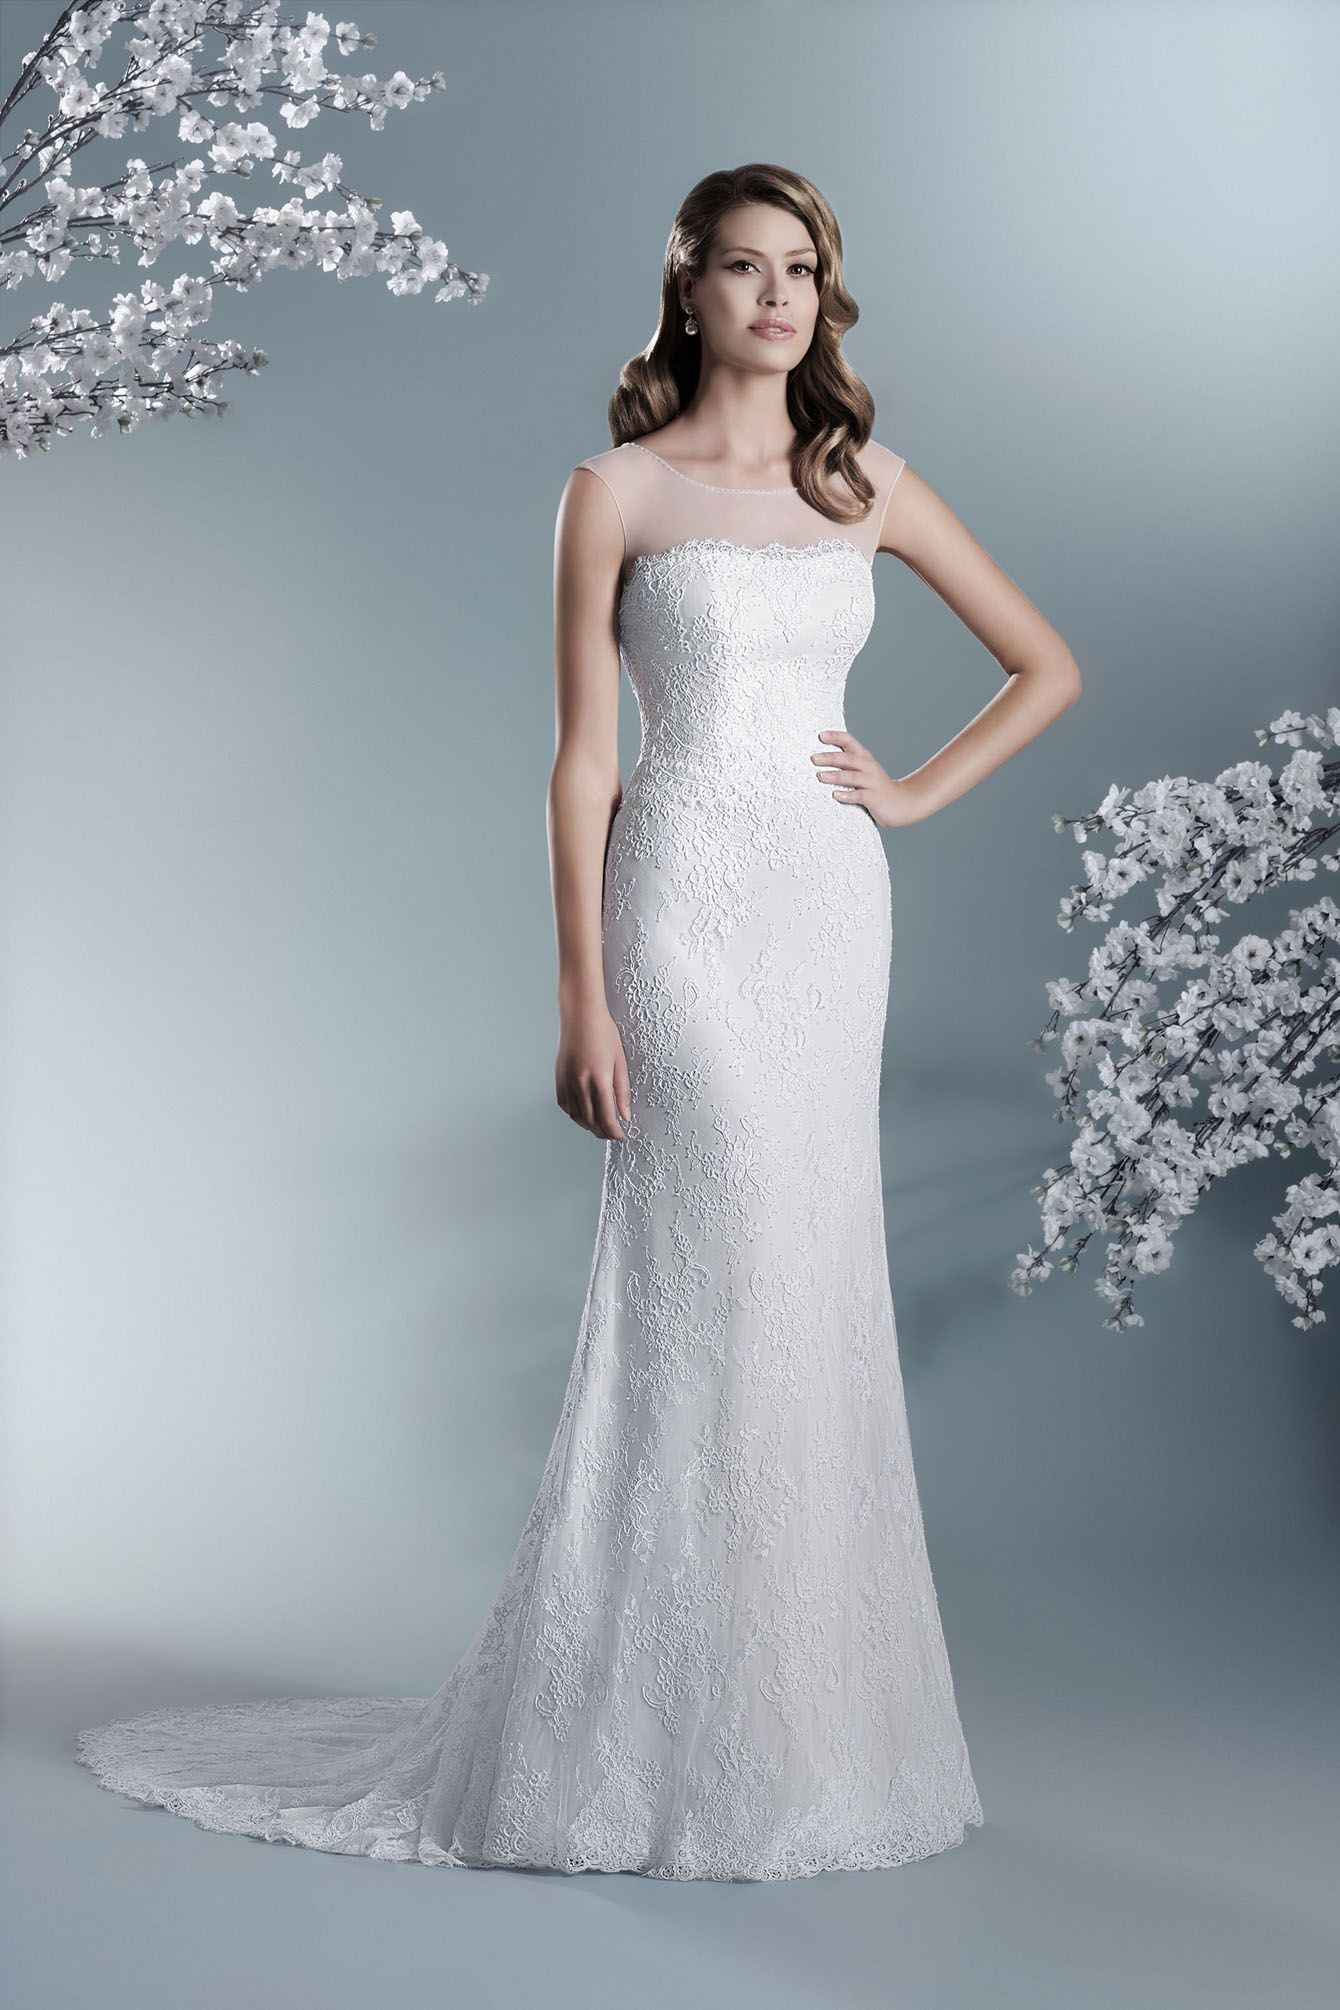 Agnes - The One 603T | Agnes - The One | Pinterest | Wedding dress ...